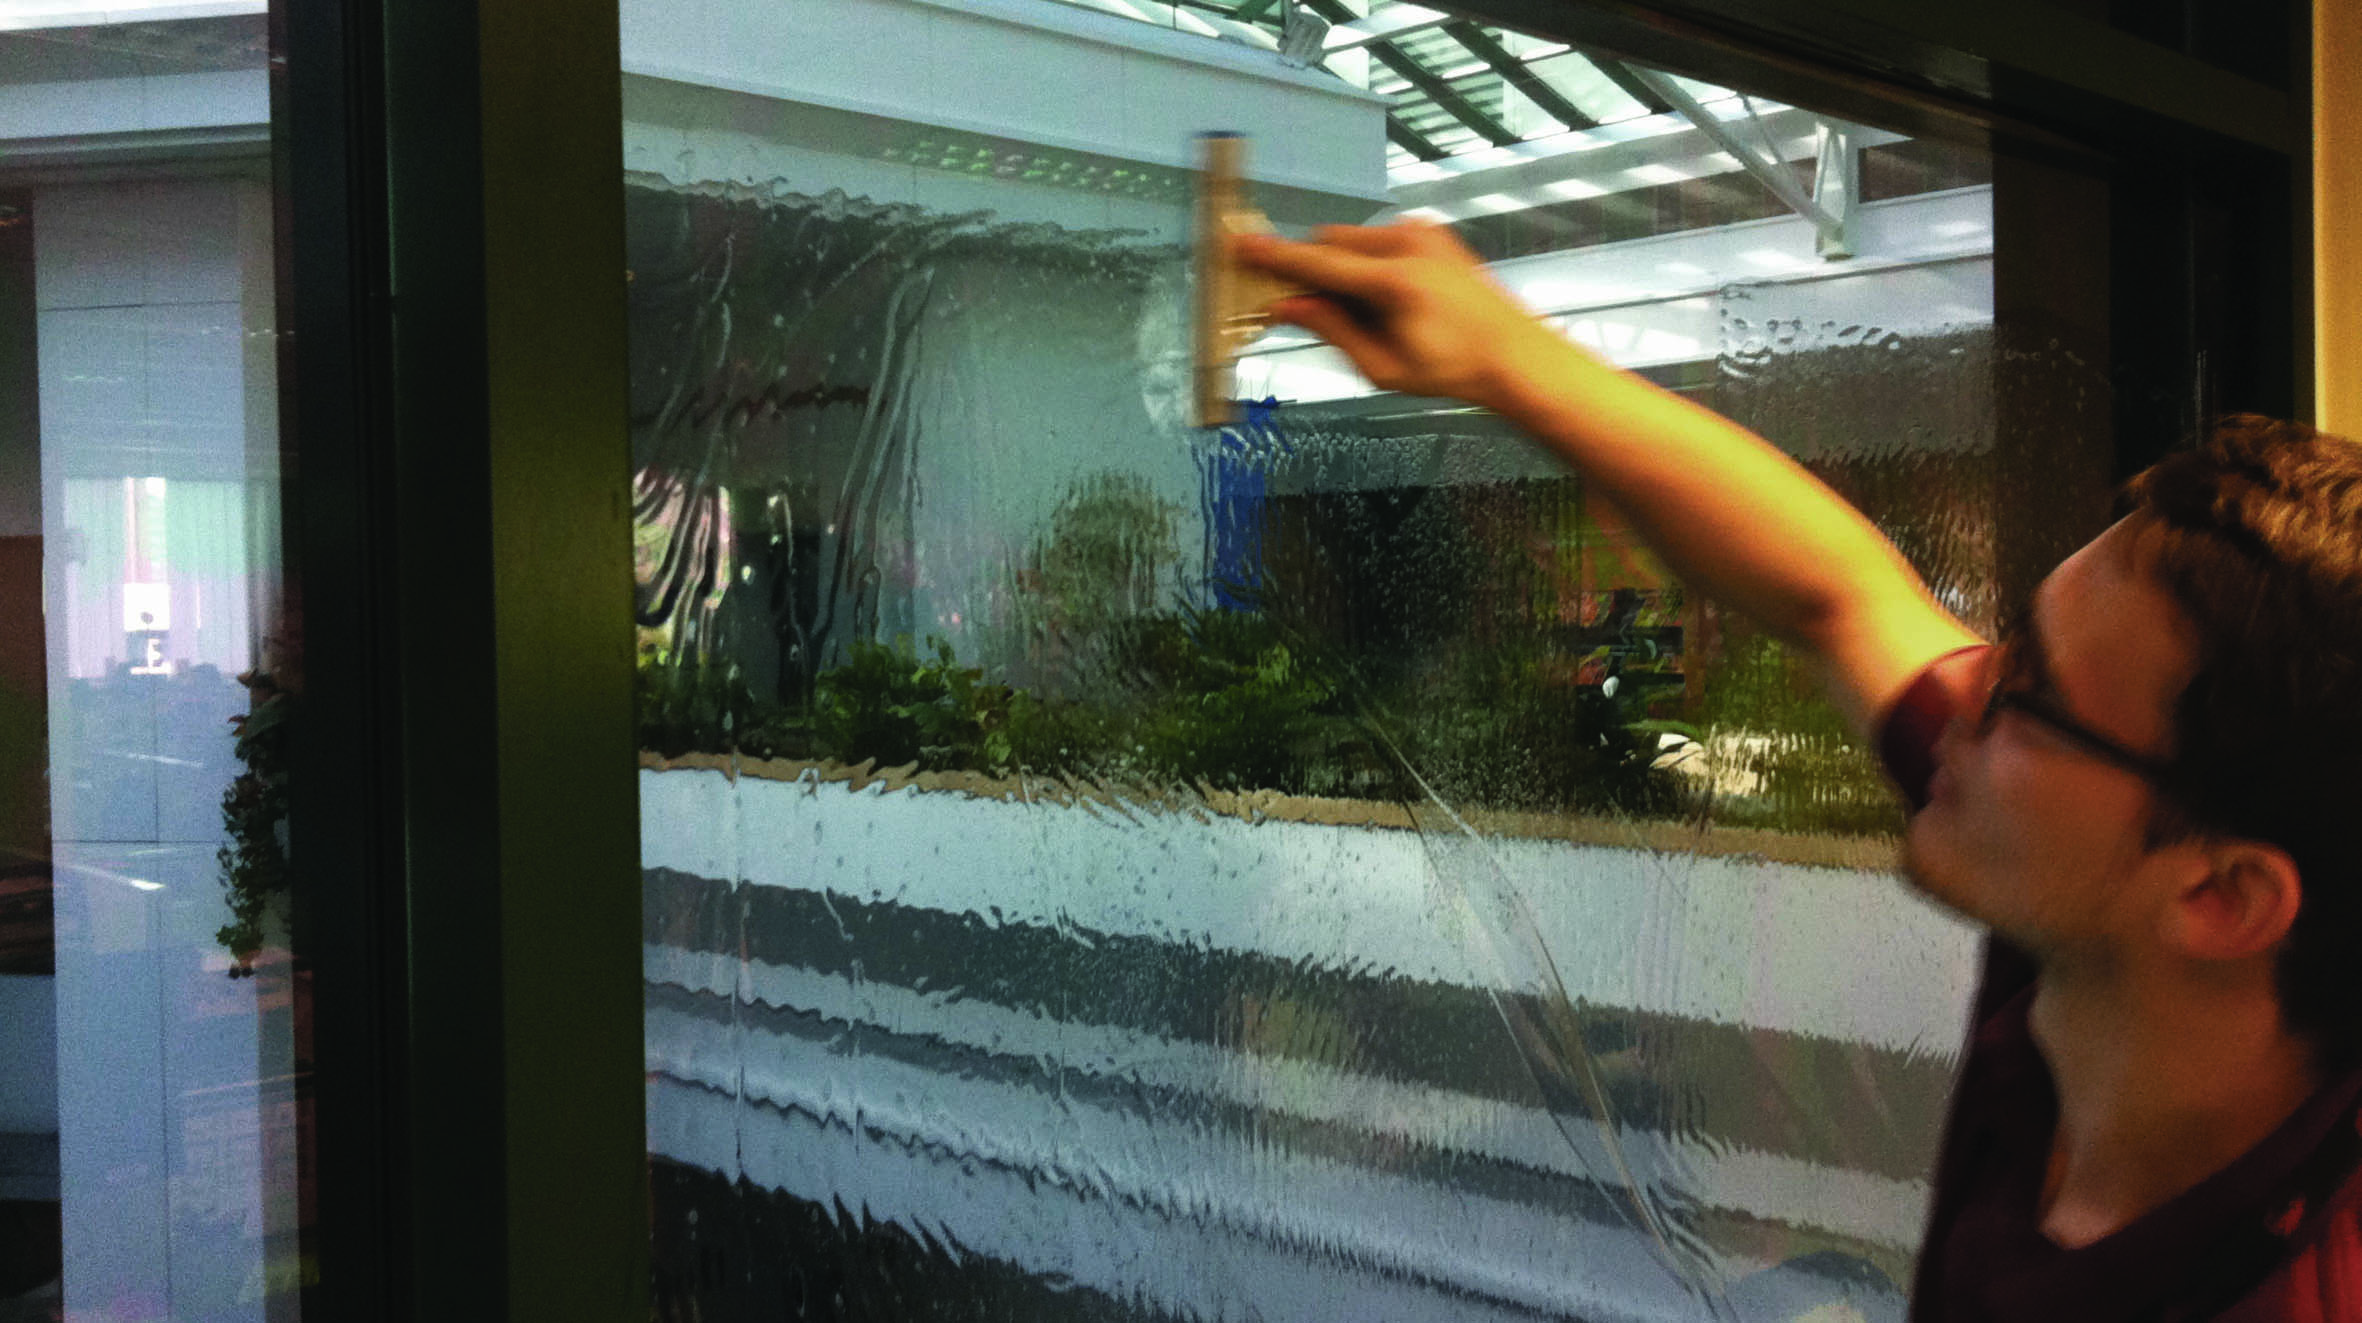 Quality window film direct. Featured Image